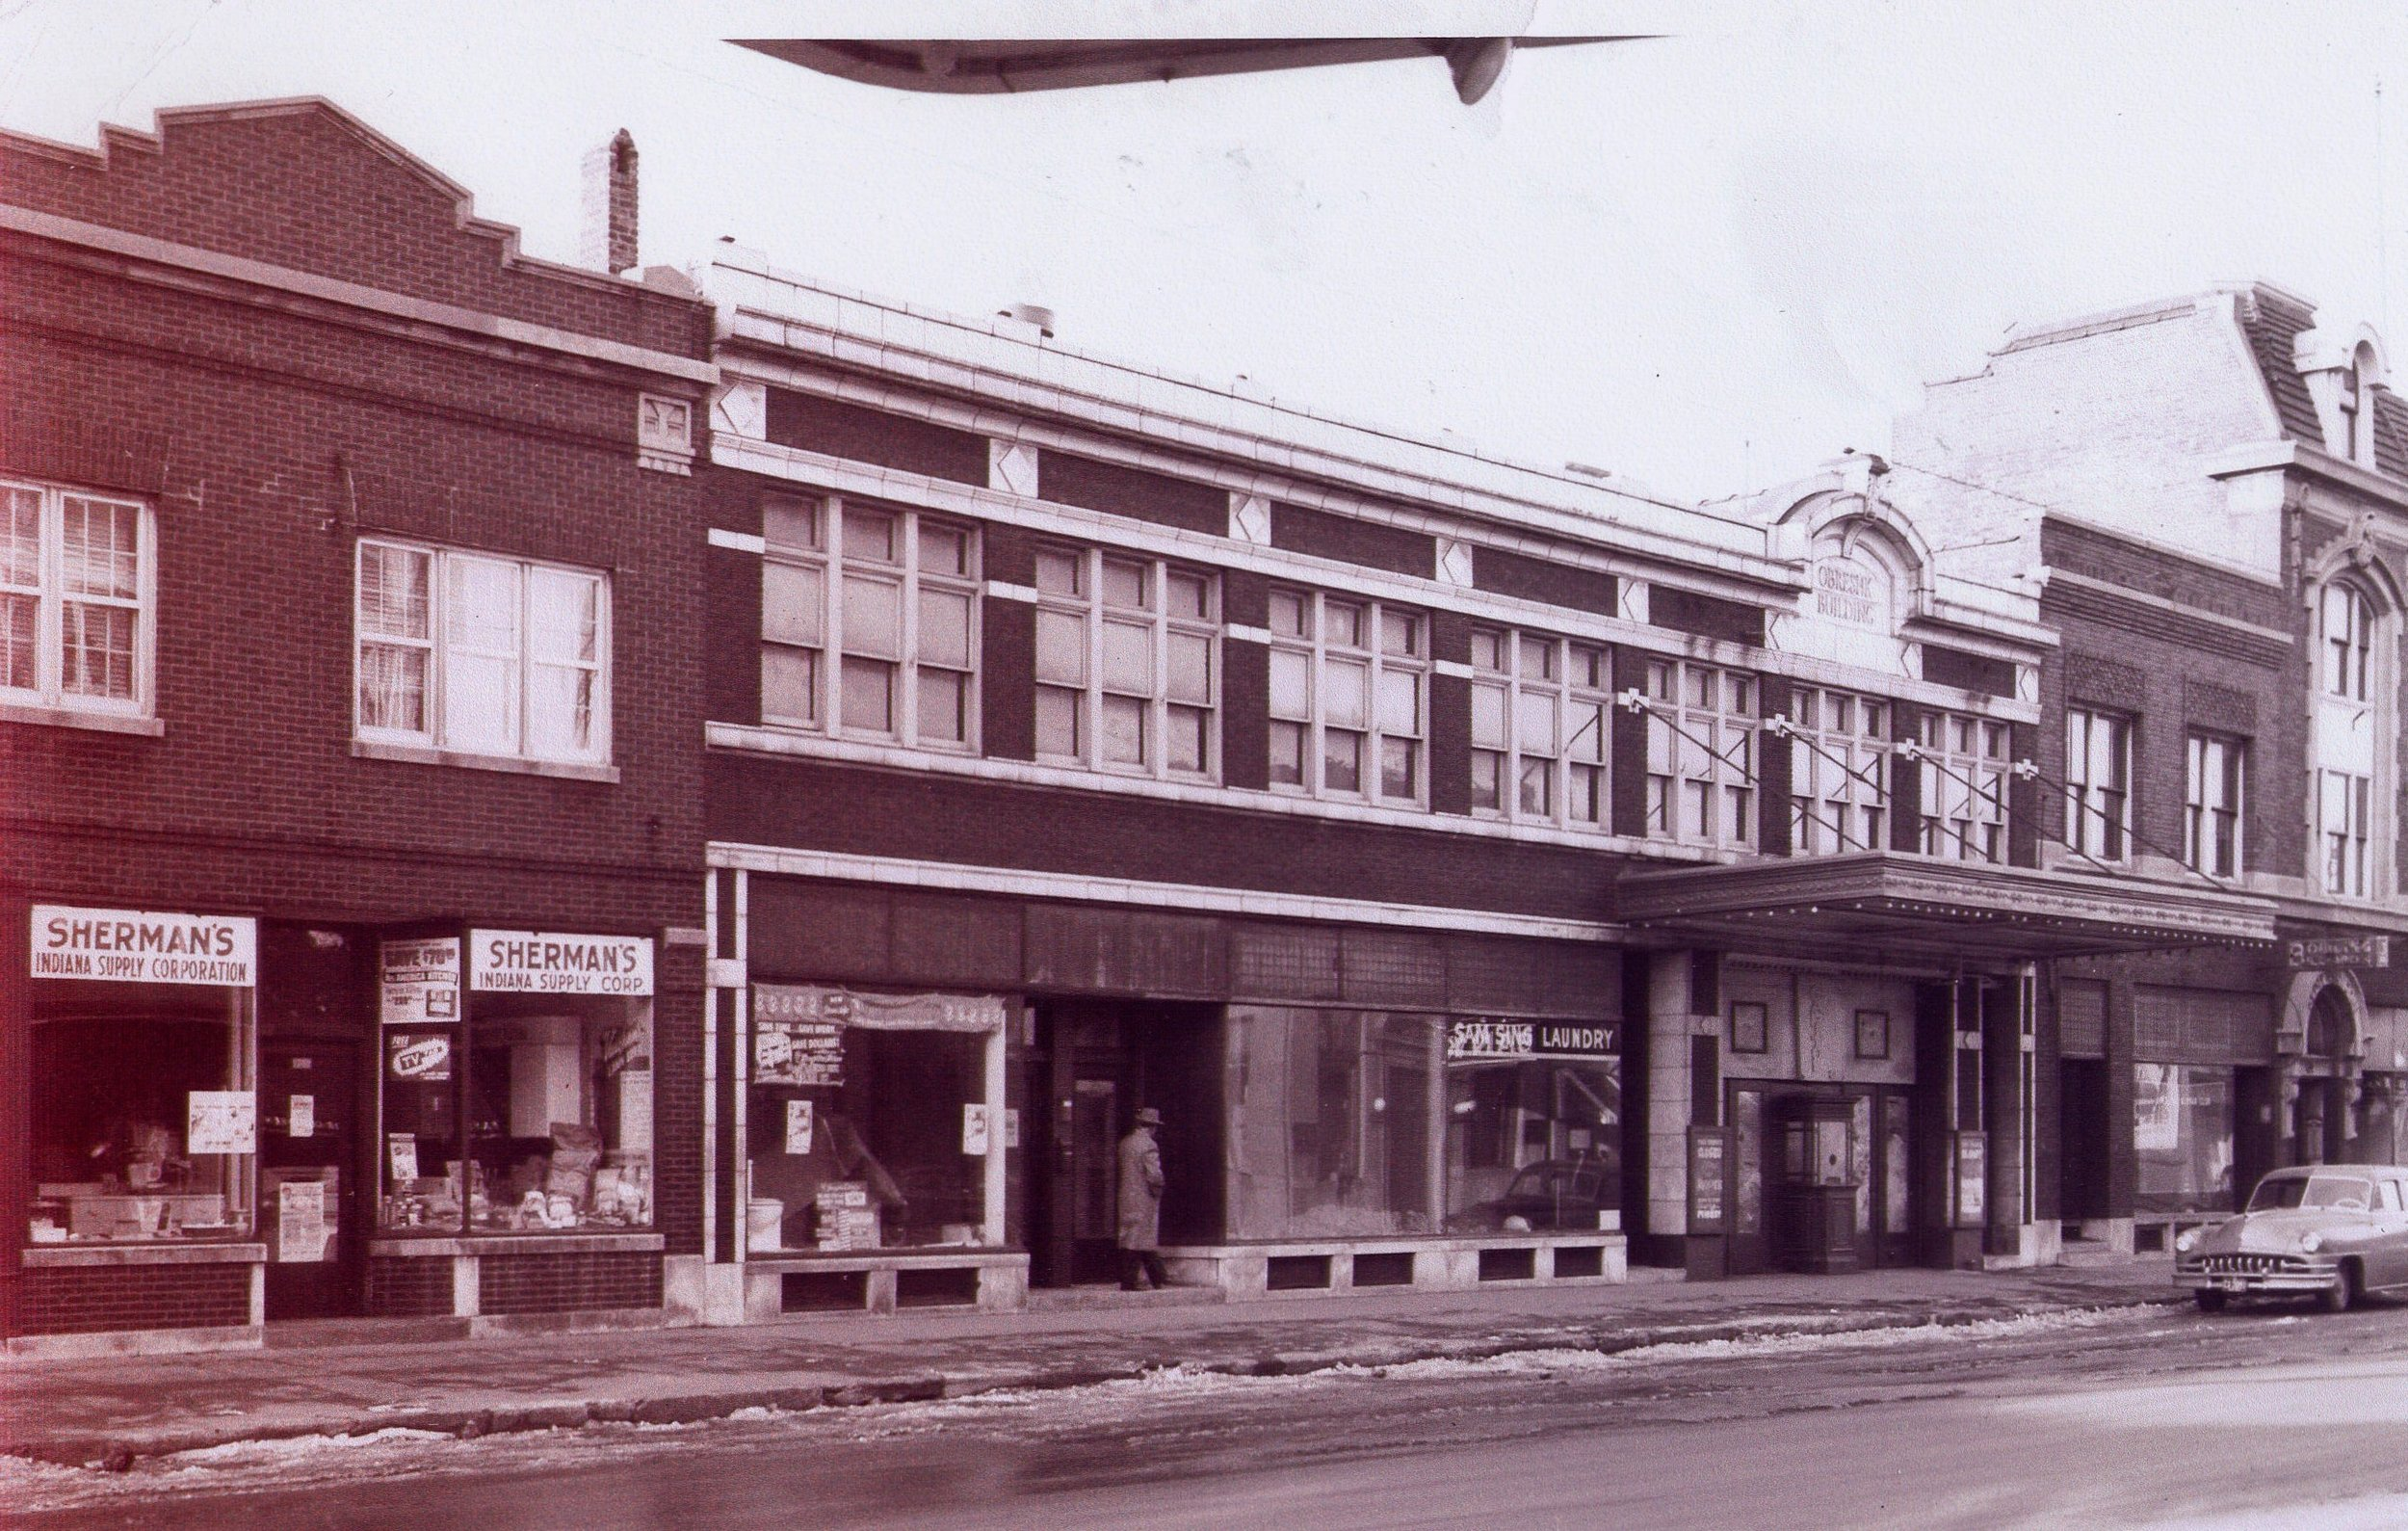 Beggar's Pizza is the current occupant of 1326 119th Street. But this is how that area looked in the early 1950s, after the Capitol Theatre closed down. The overhang on the front of the building (to the right in this photo) was the theatre entrance. Next door, toward the center of the photo, was Sam Sing Laundry, still visible in this picture. Sherman's Indiana Supply Store is on the left. It soon took over the space which had been occupied by the theatre and laundry.